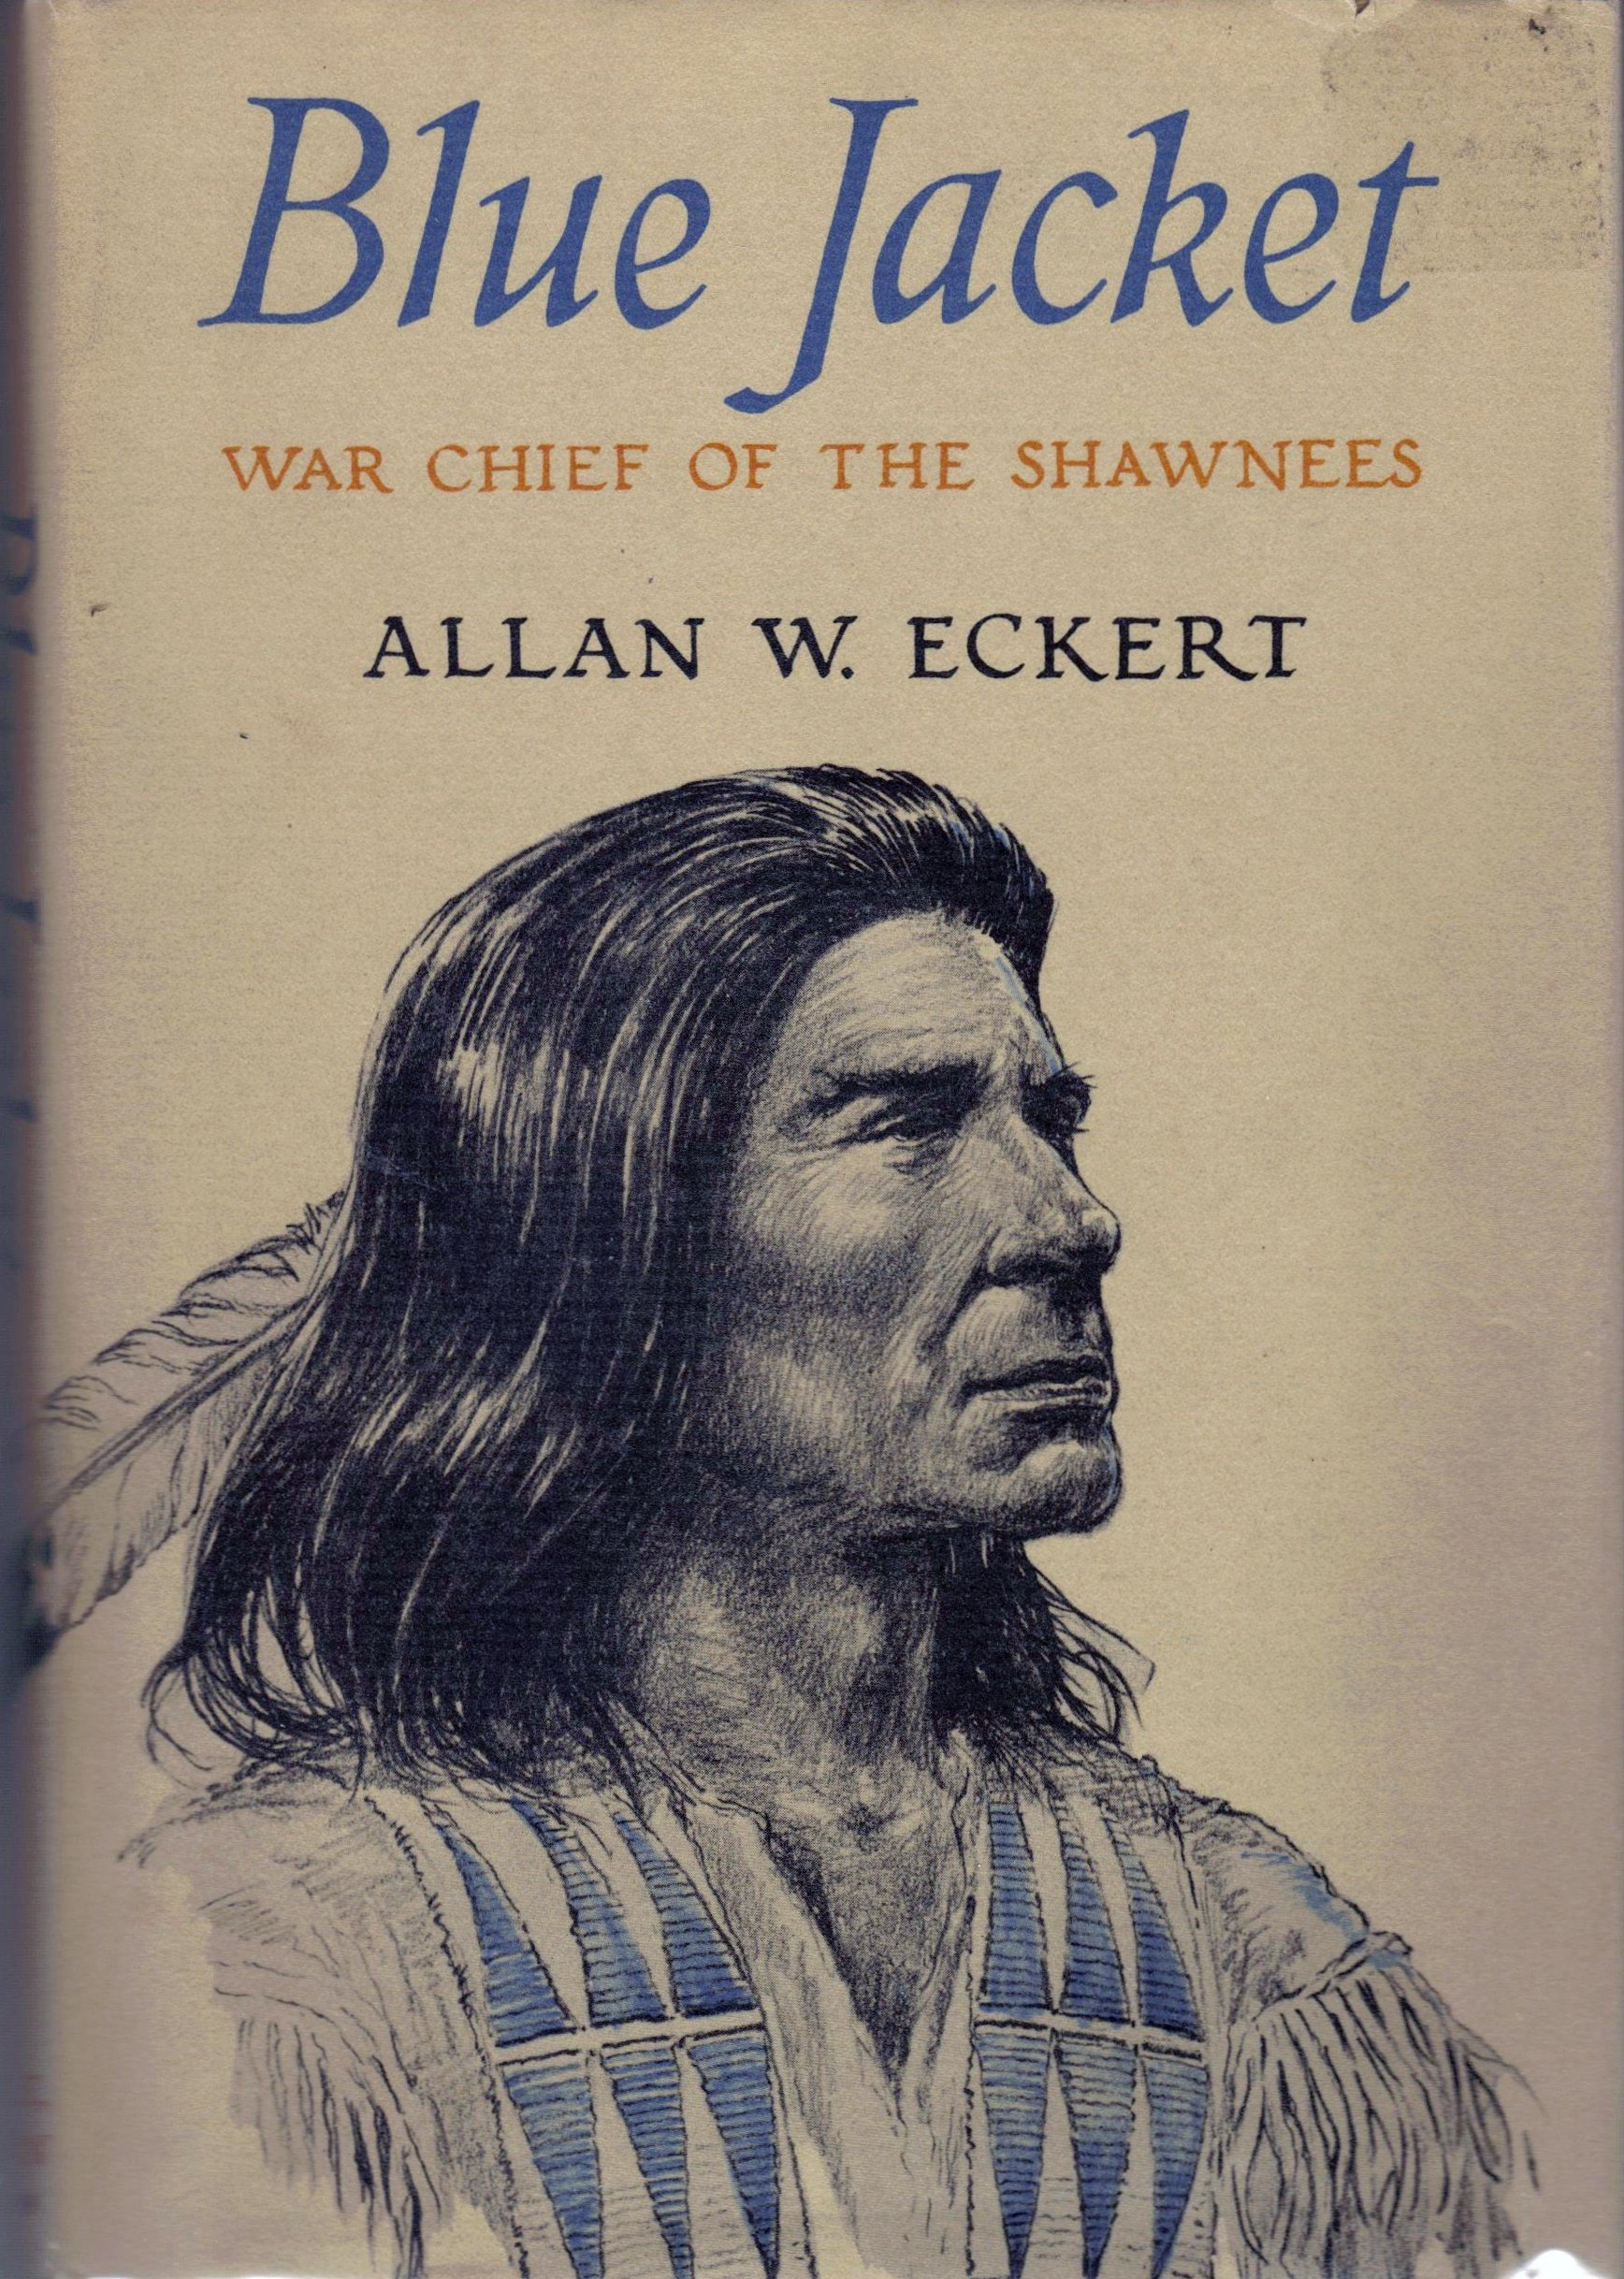 Amazon.com: Blue Jacket: War Chief of the Shawnees (9780316208635 ...